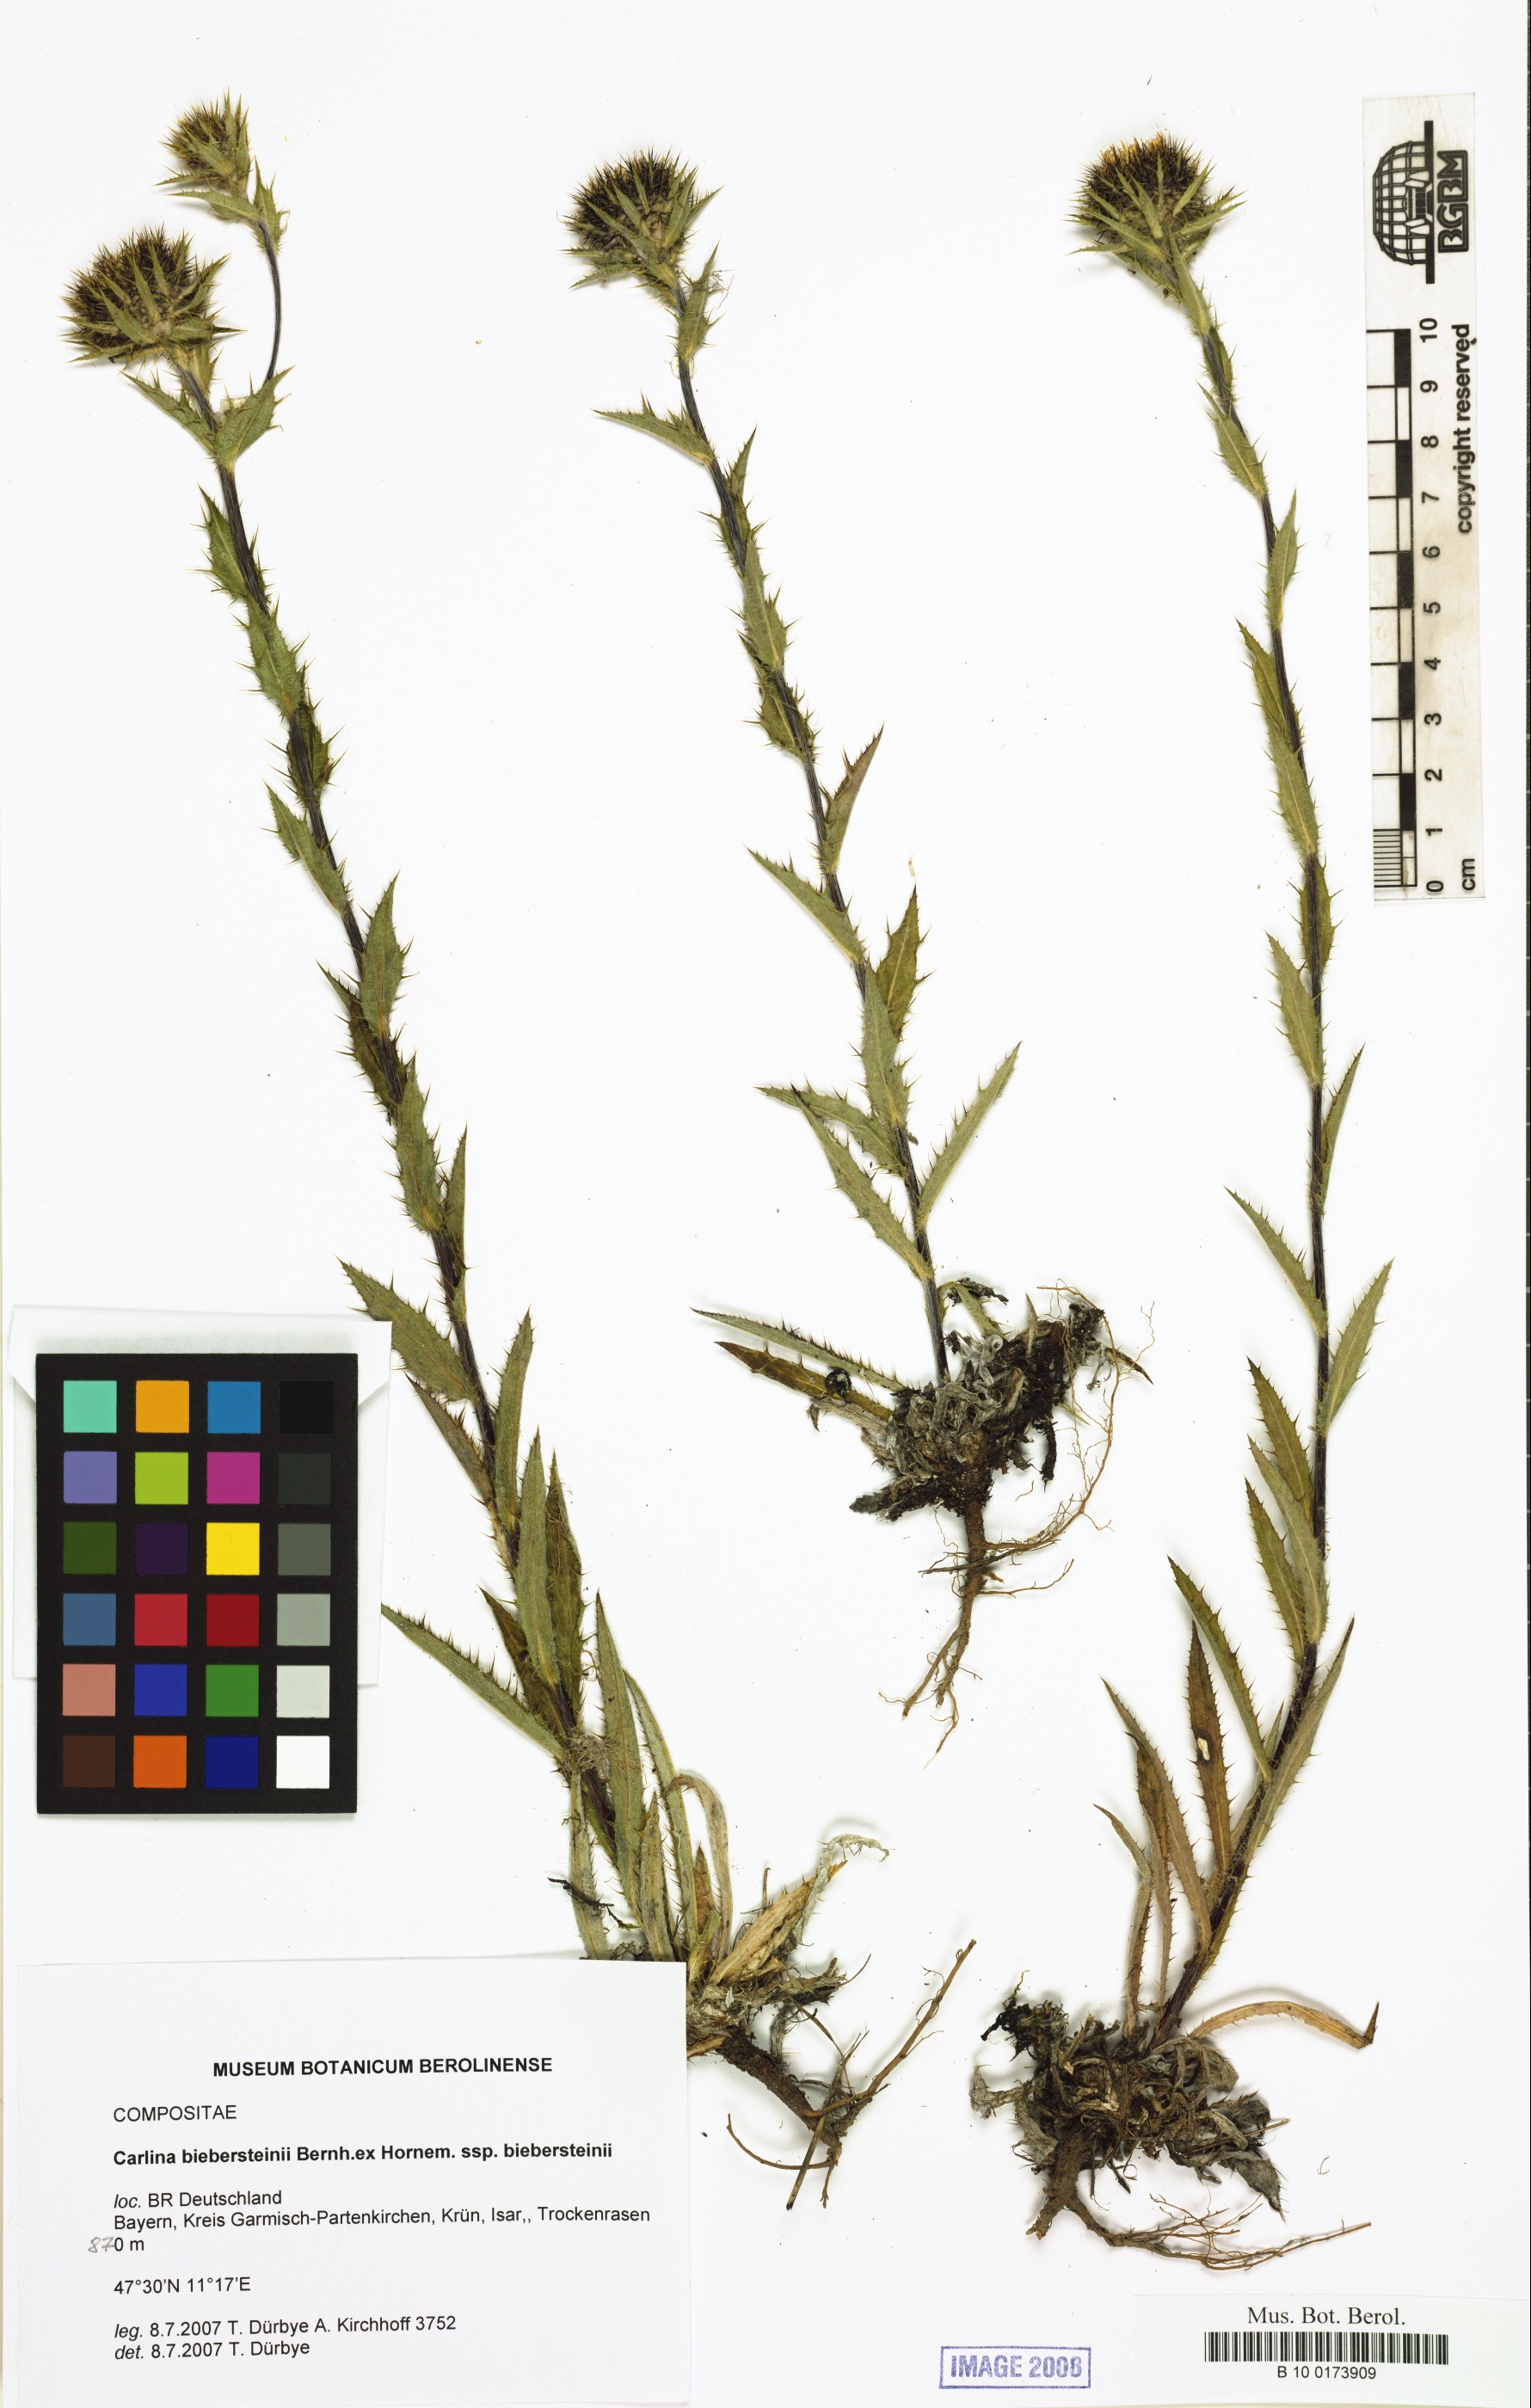 ©   Röpert, D. (Ed.) 2000- (continuously updated): Digital specimen images at the Herbarium Berolinense. - Published on the Internet http://ww2.bgbm.org/herbarium/ (Barcode: B 10 0173909 / ImageId: 291525) [accessed 20-Nov-11].<br>